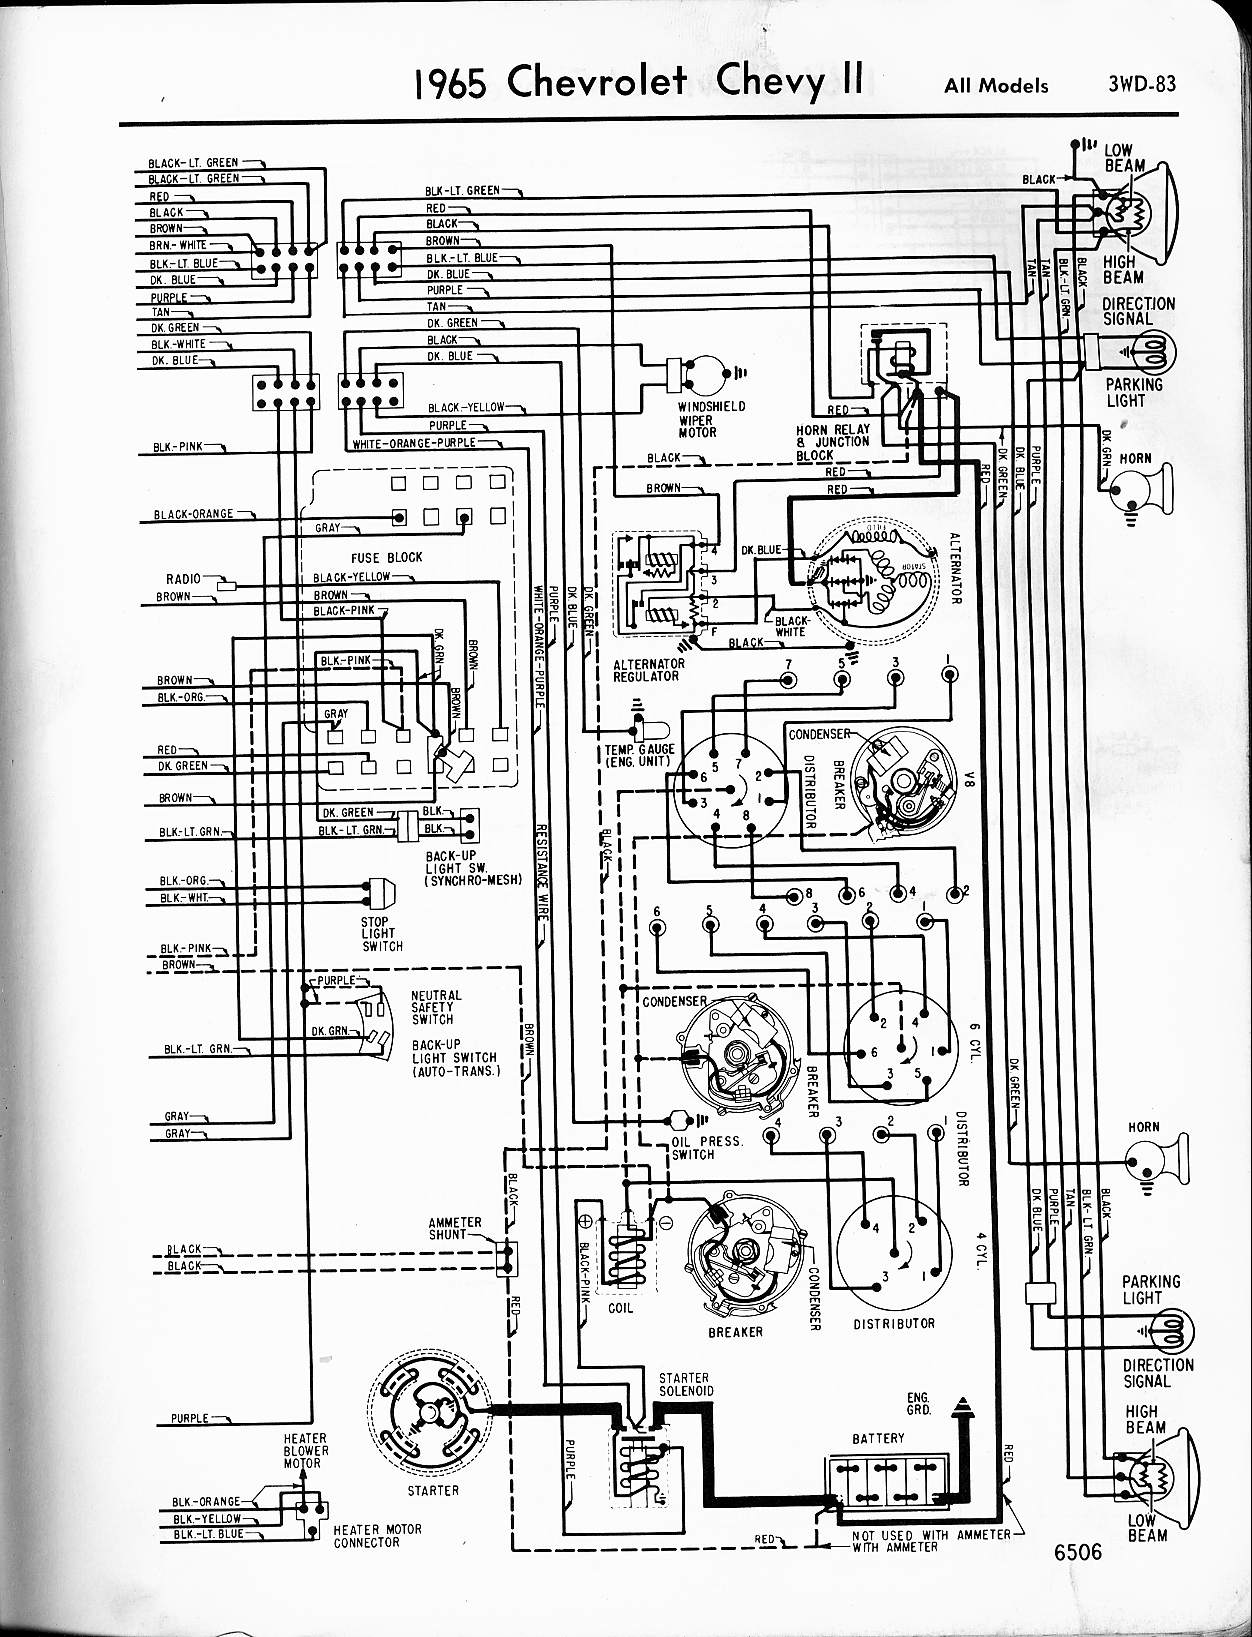 1969 Corvette Headlight Wiring Diagram Libraries C6 Diagrams Switch Todayschevy 2007